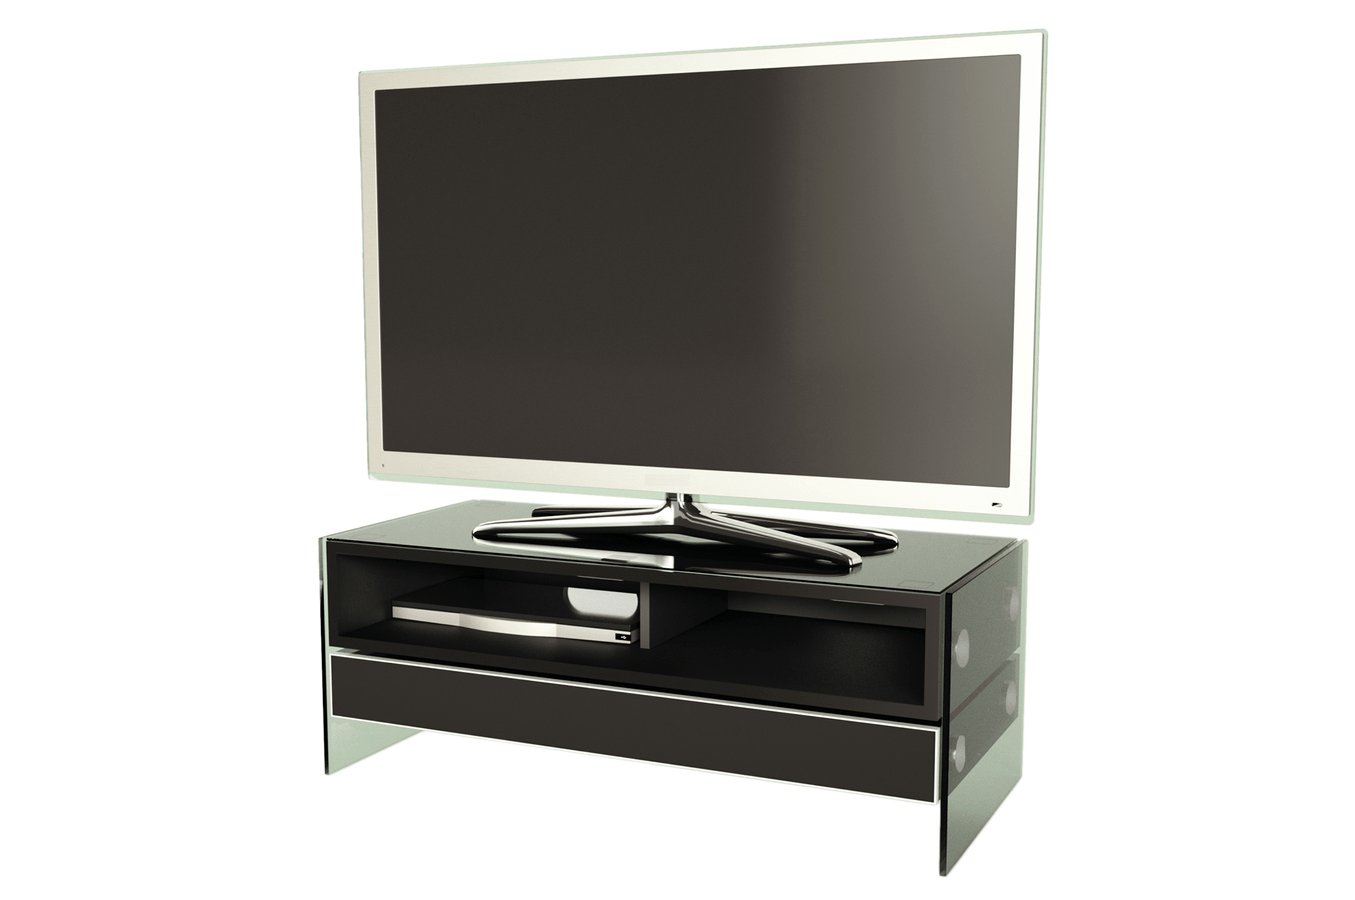 Alphason Meuble Tv Meuble Tv Alphason Evt 1000 Blk Evt1000 3678334 Darty